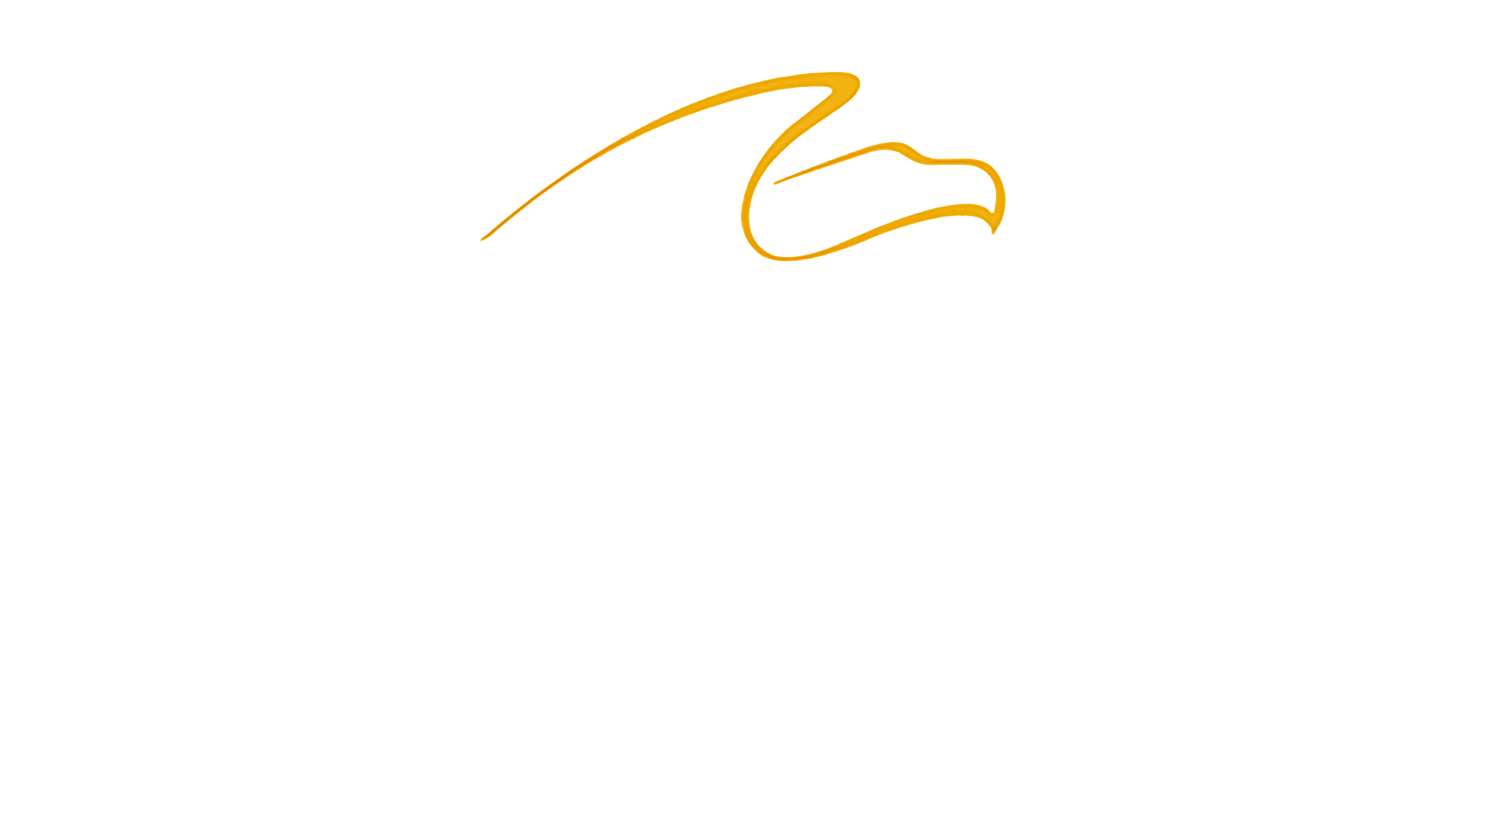 Williamsburg Christian Academy